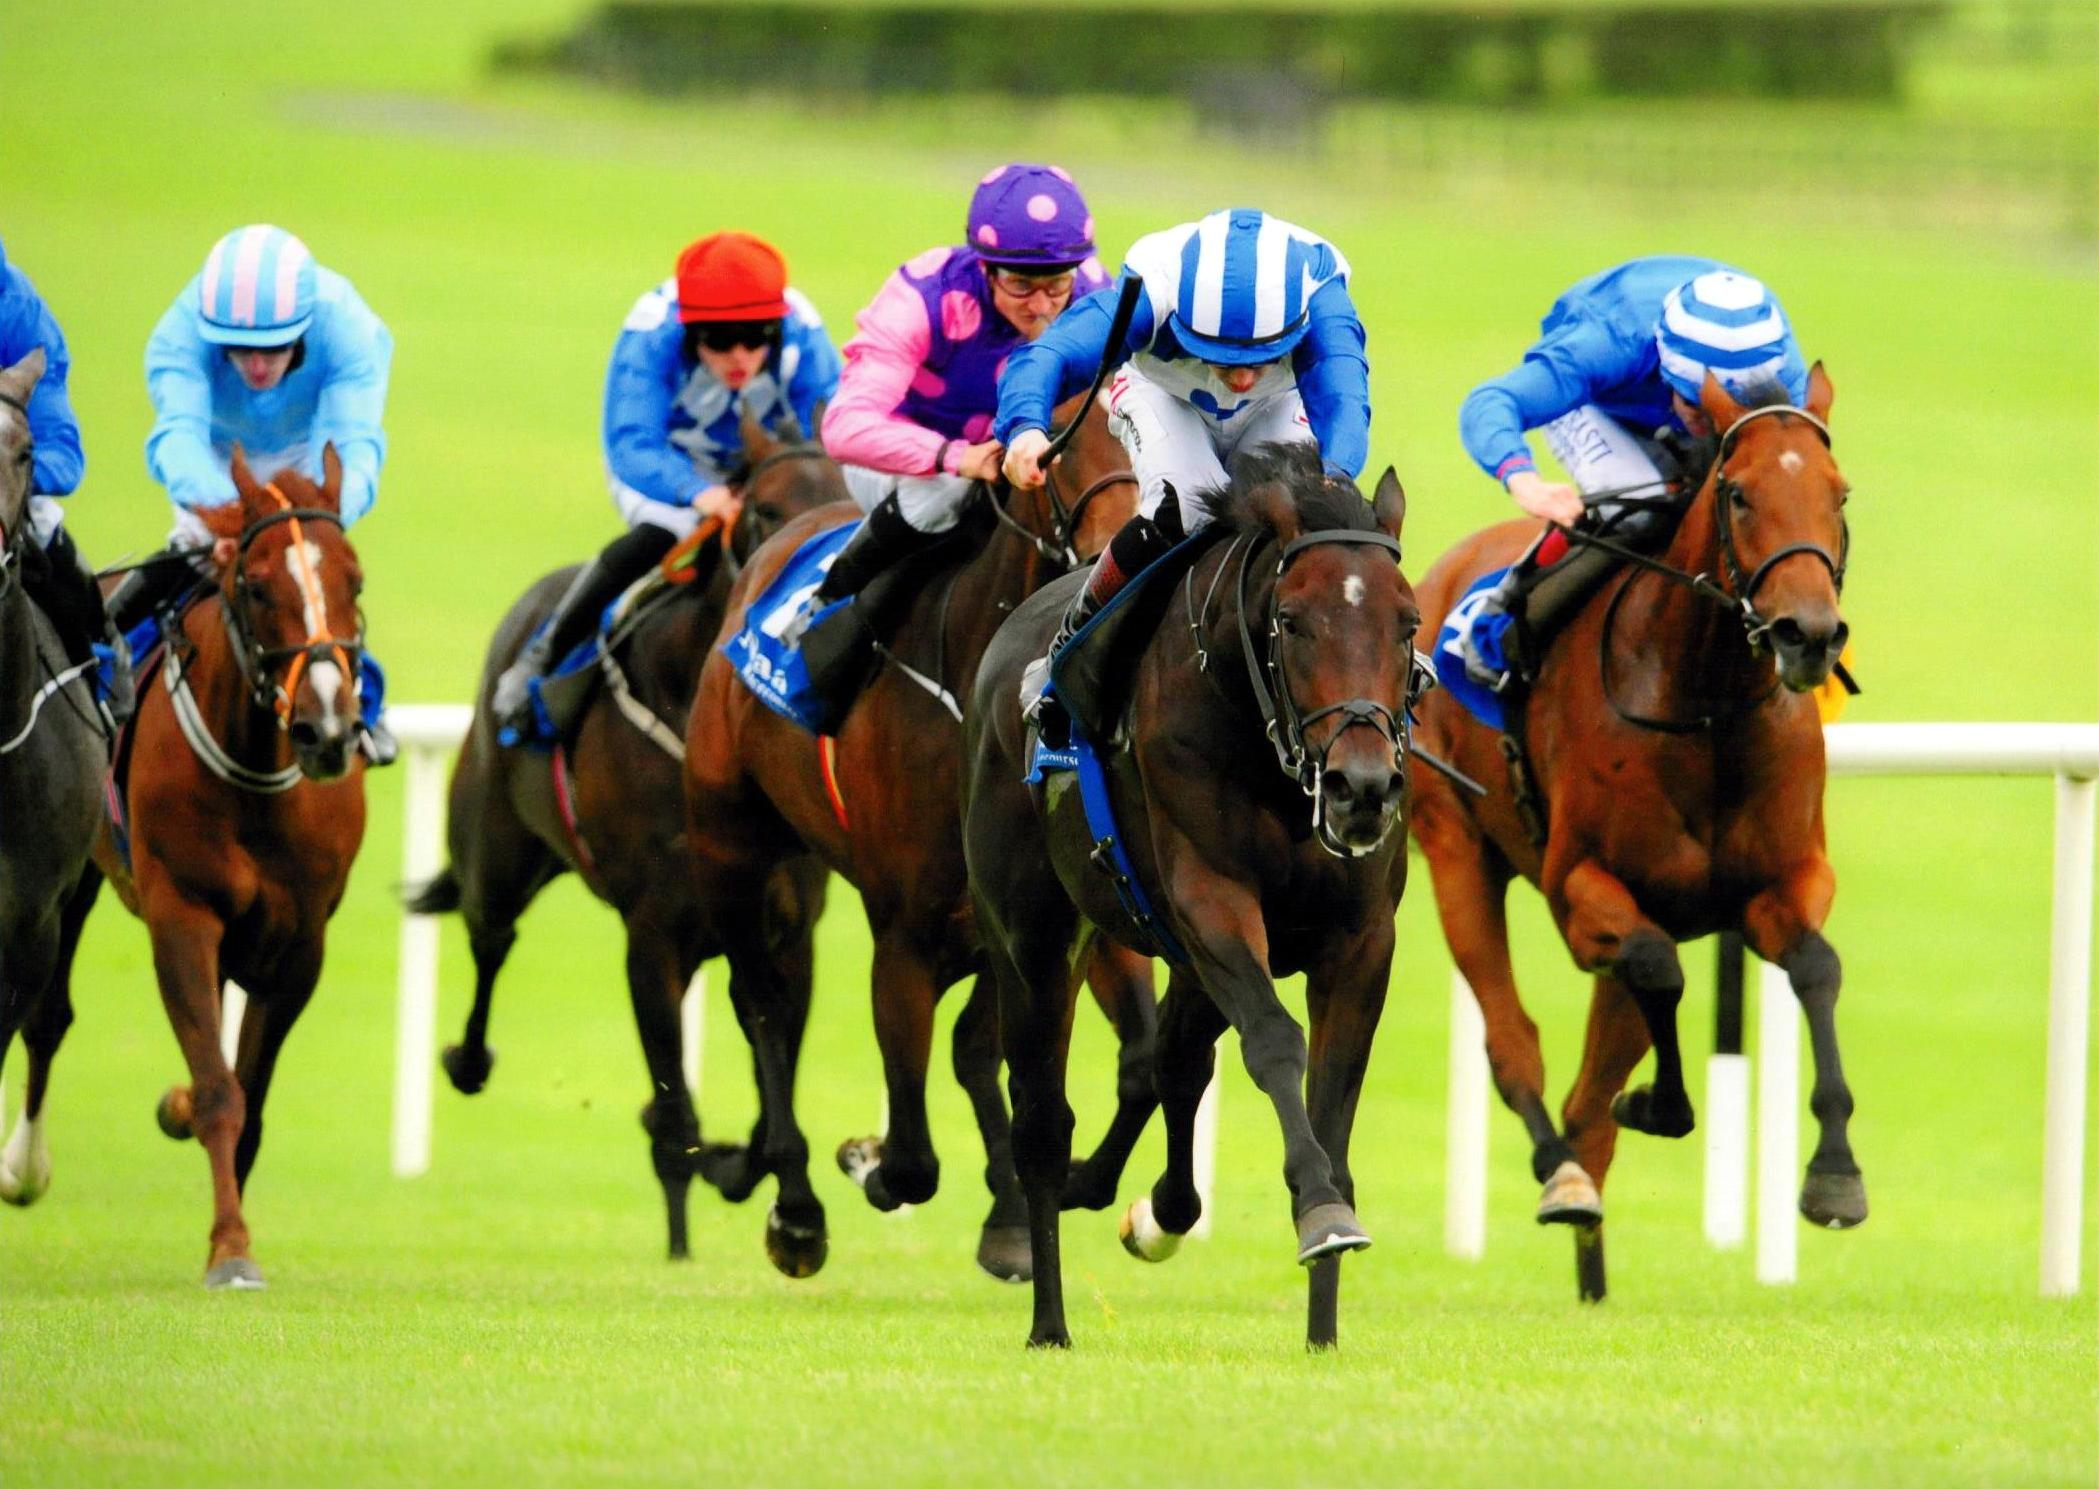 NOIVADO wins in fine style at Naas 21st September 2016